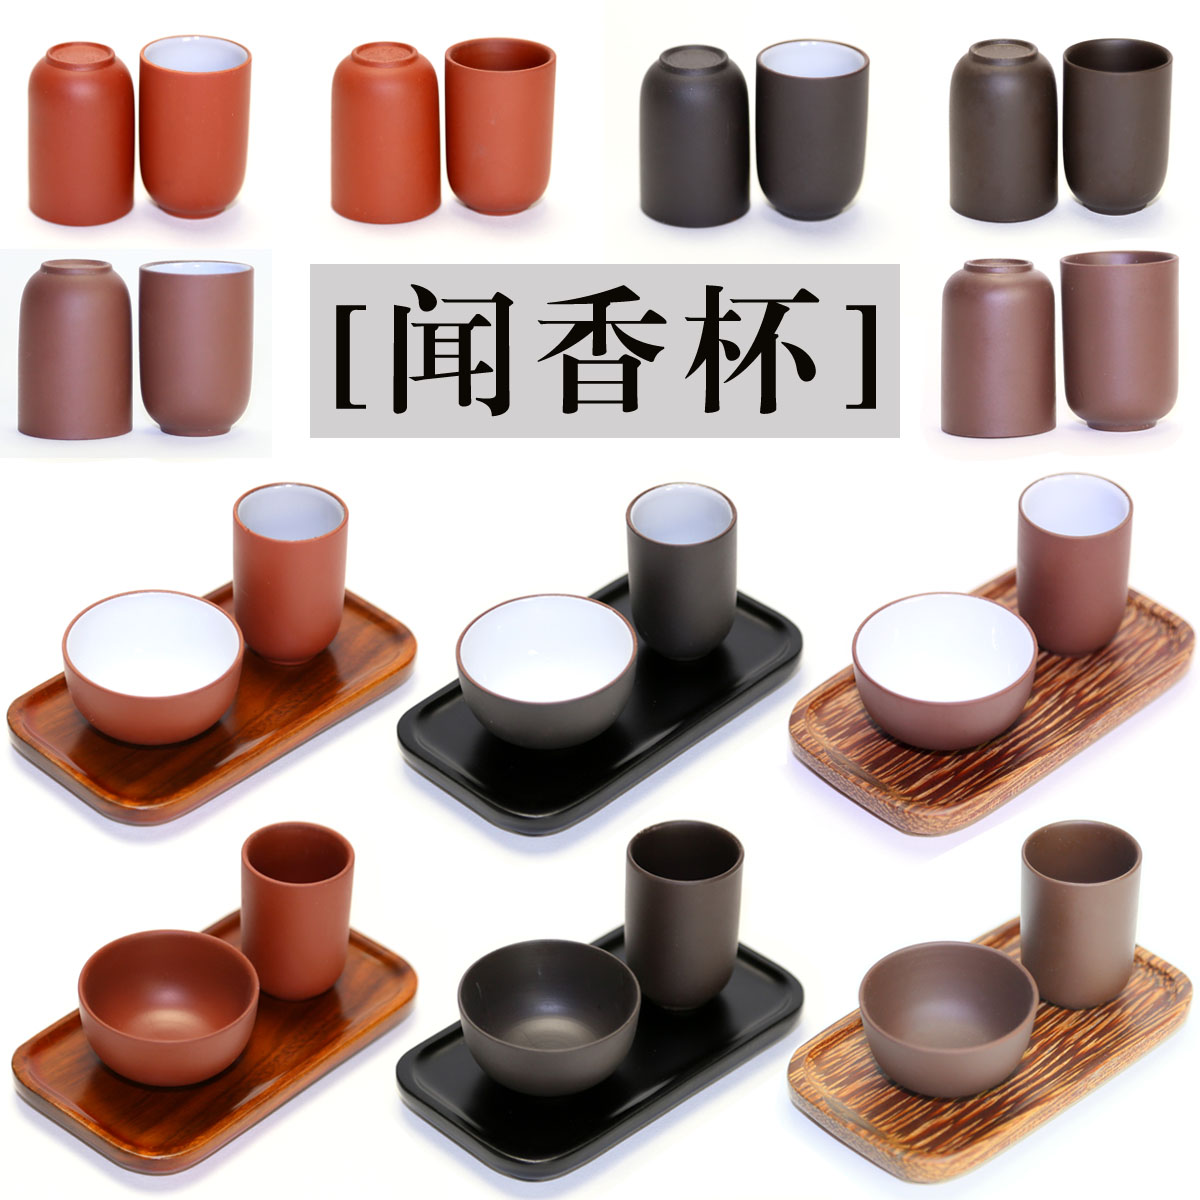 Smell cup smelling cup purple sand purple sand tea cup smelling cup ceramic smelling cup set manufacturers produced